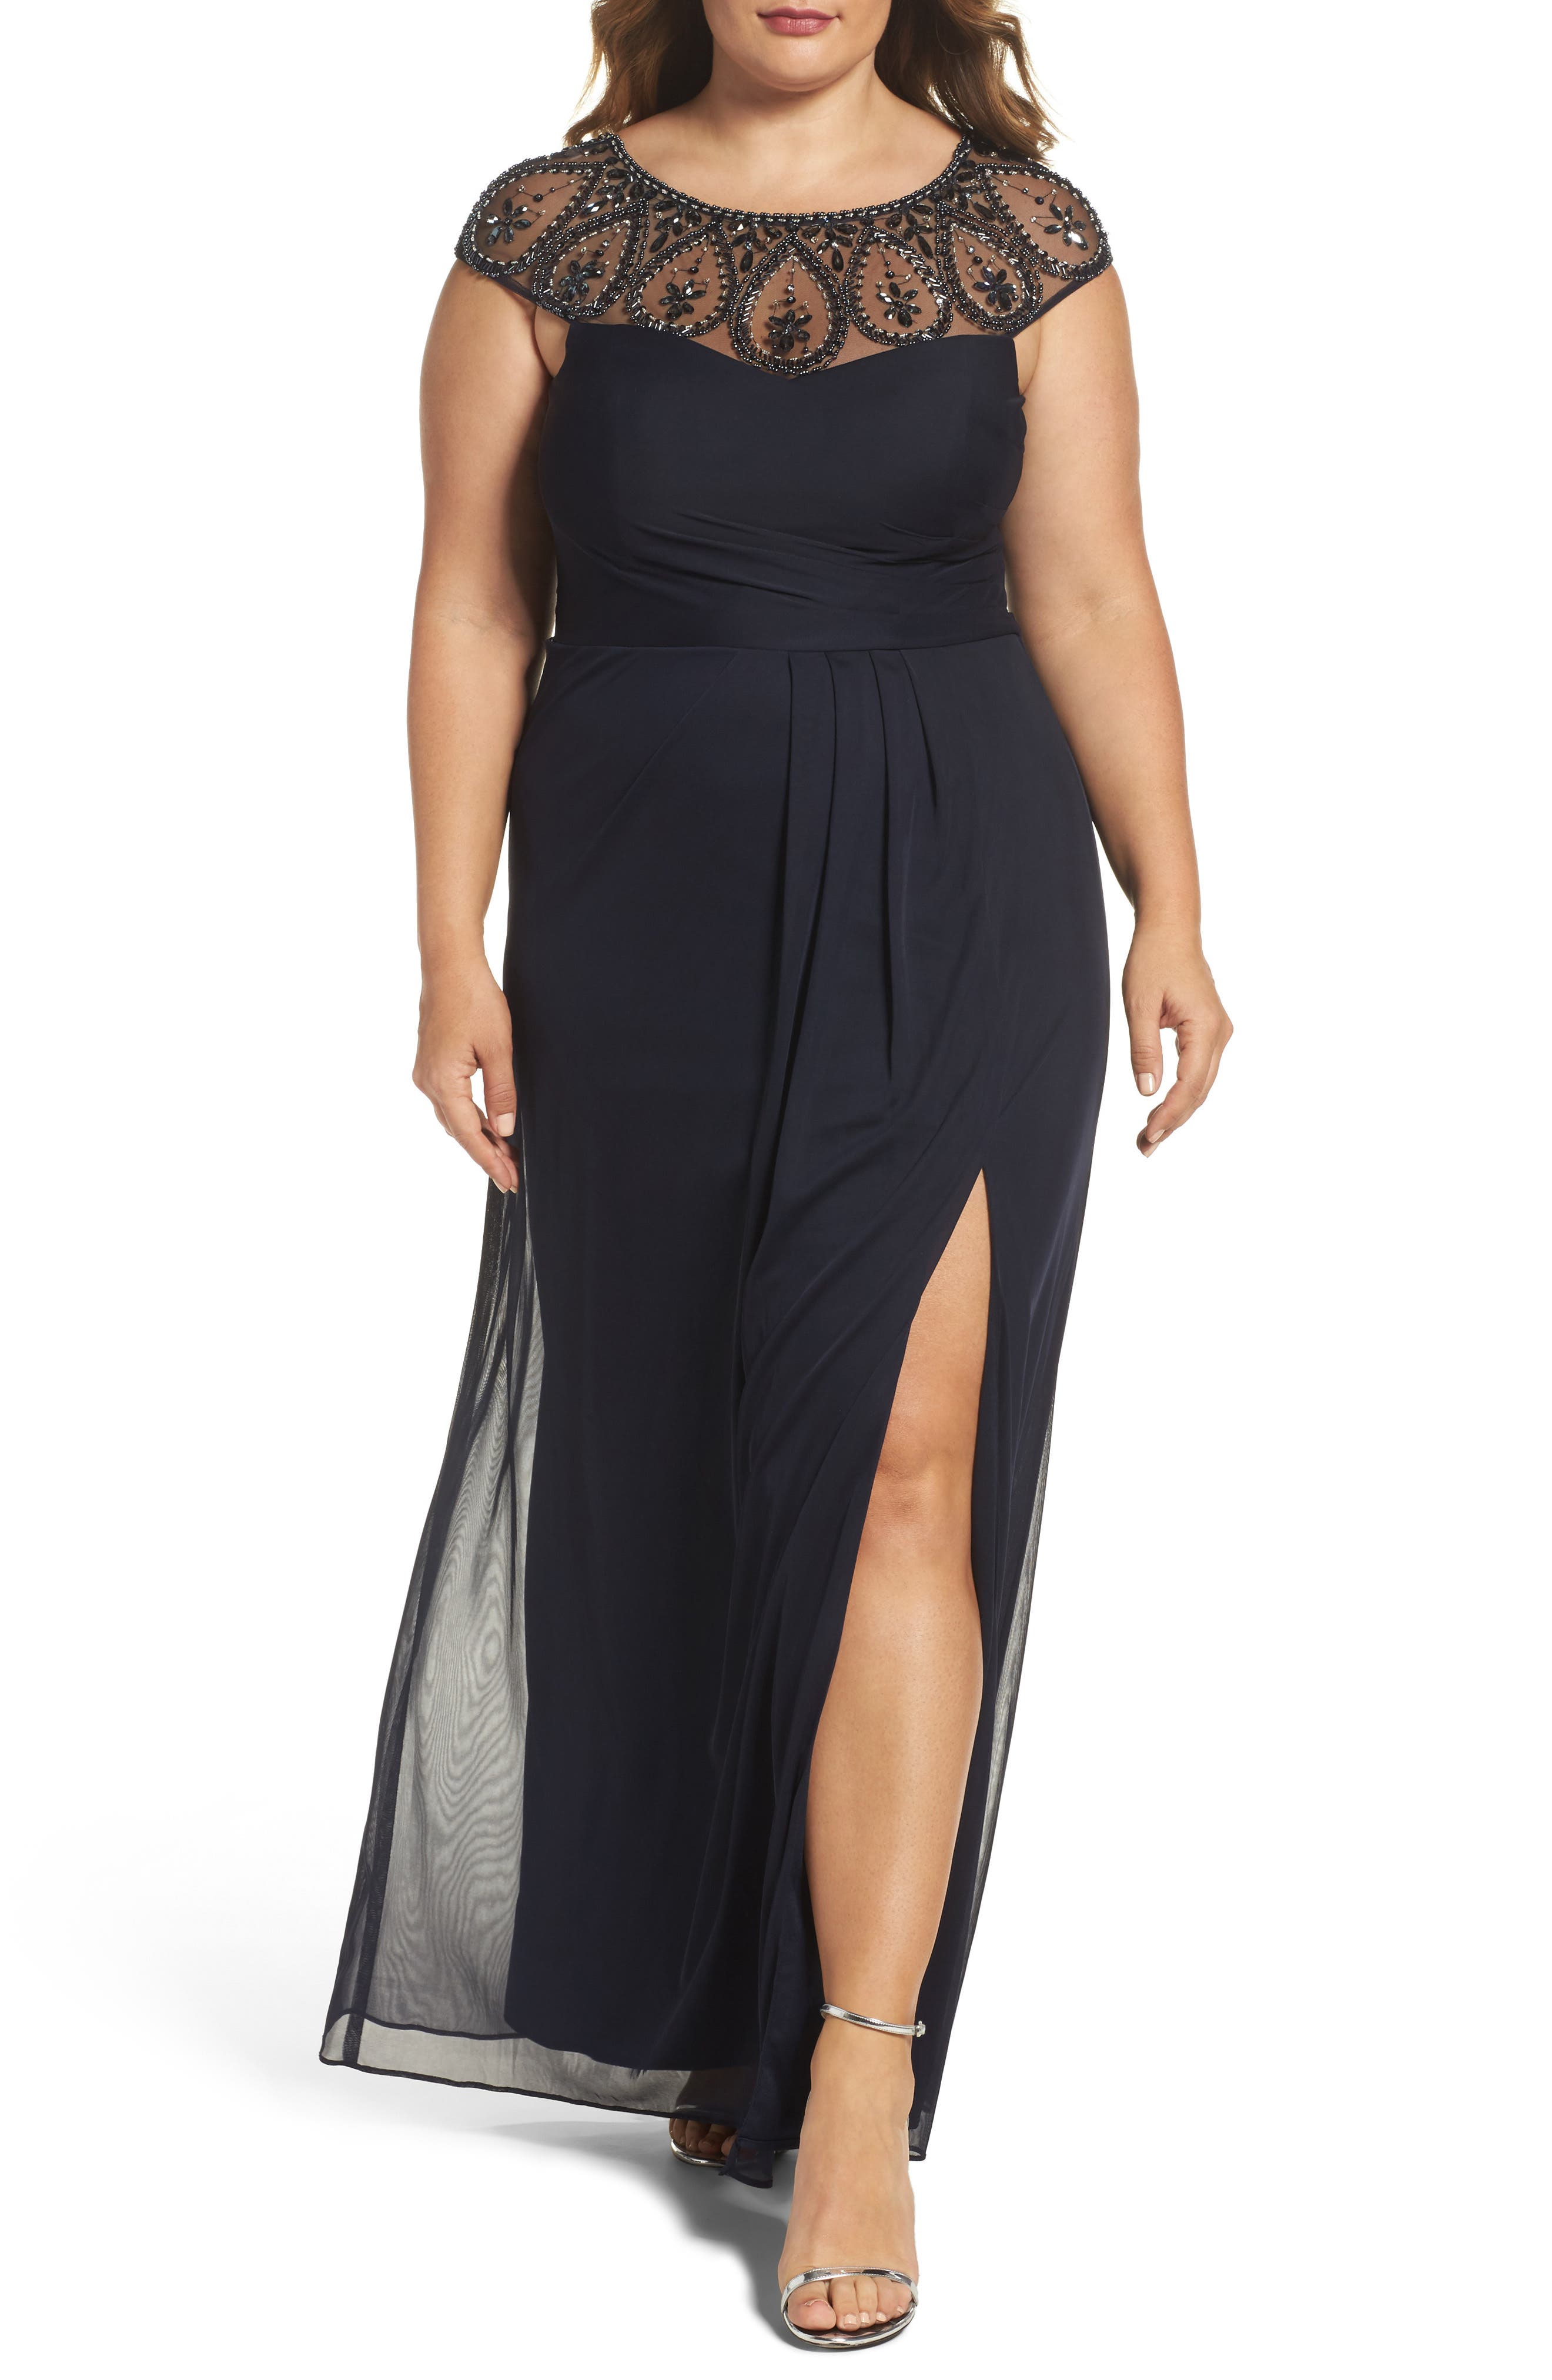 Xscape Embellished Cap Sleeve Gown (Plus Size)